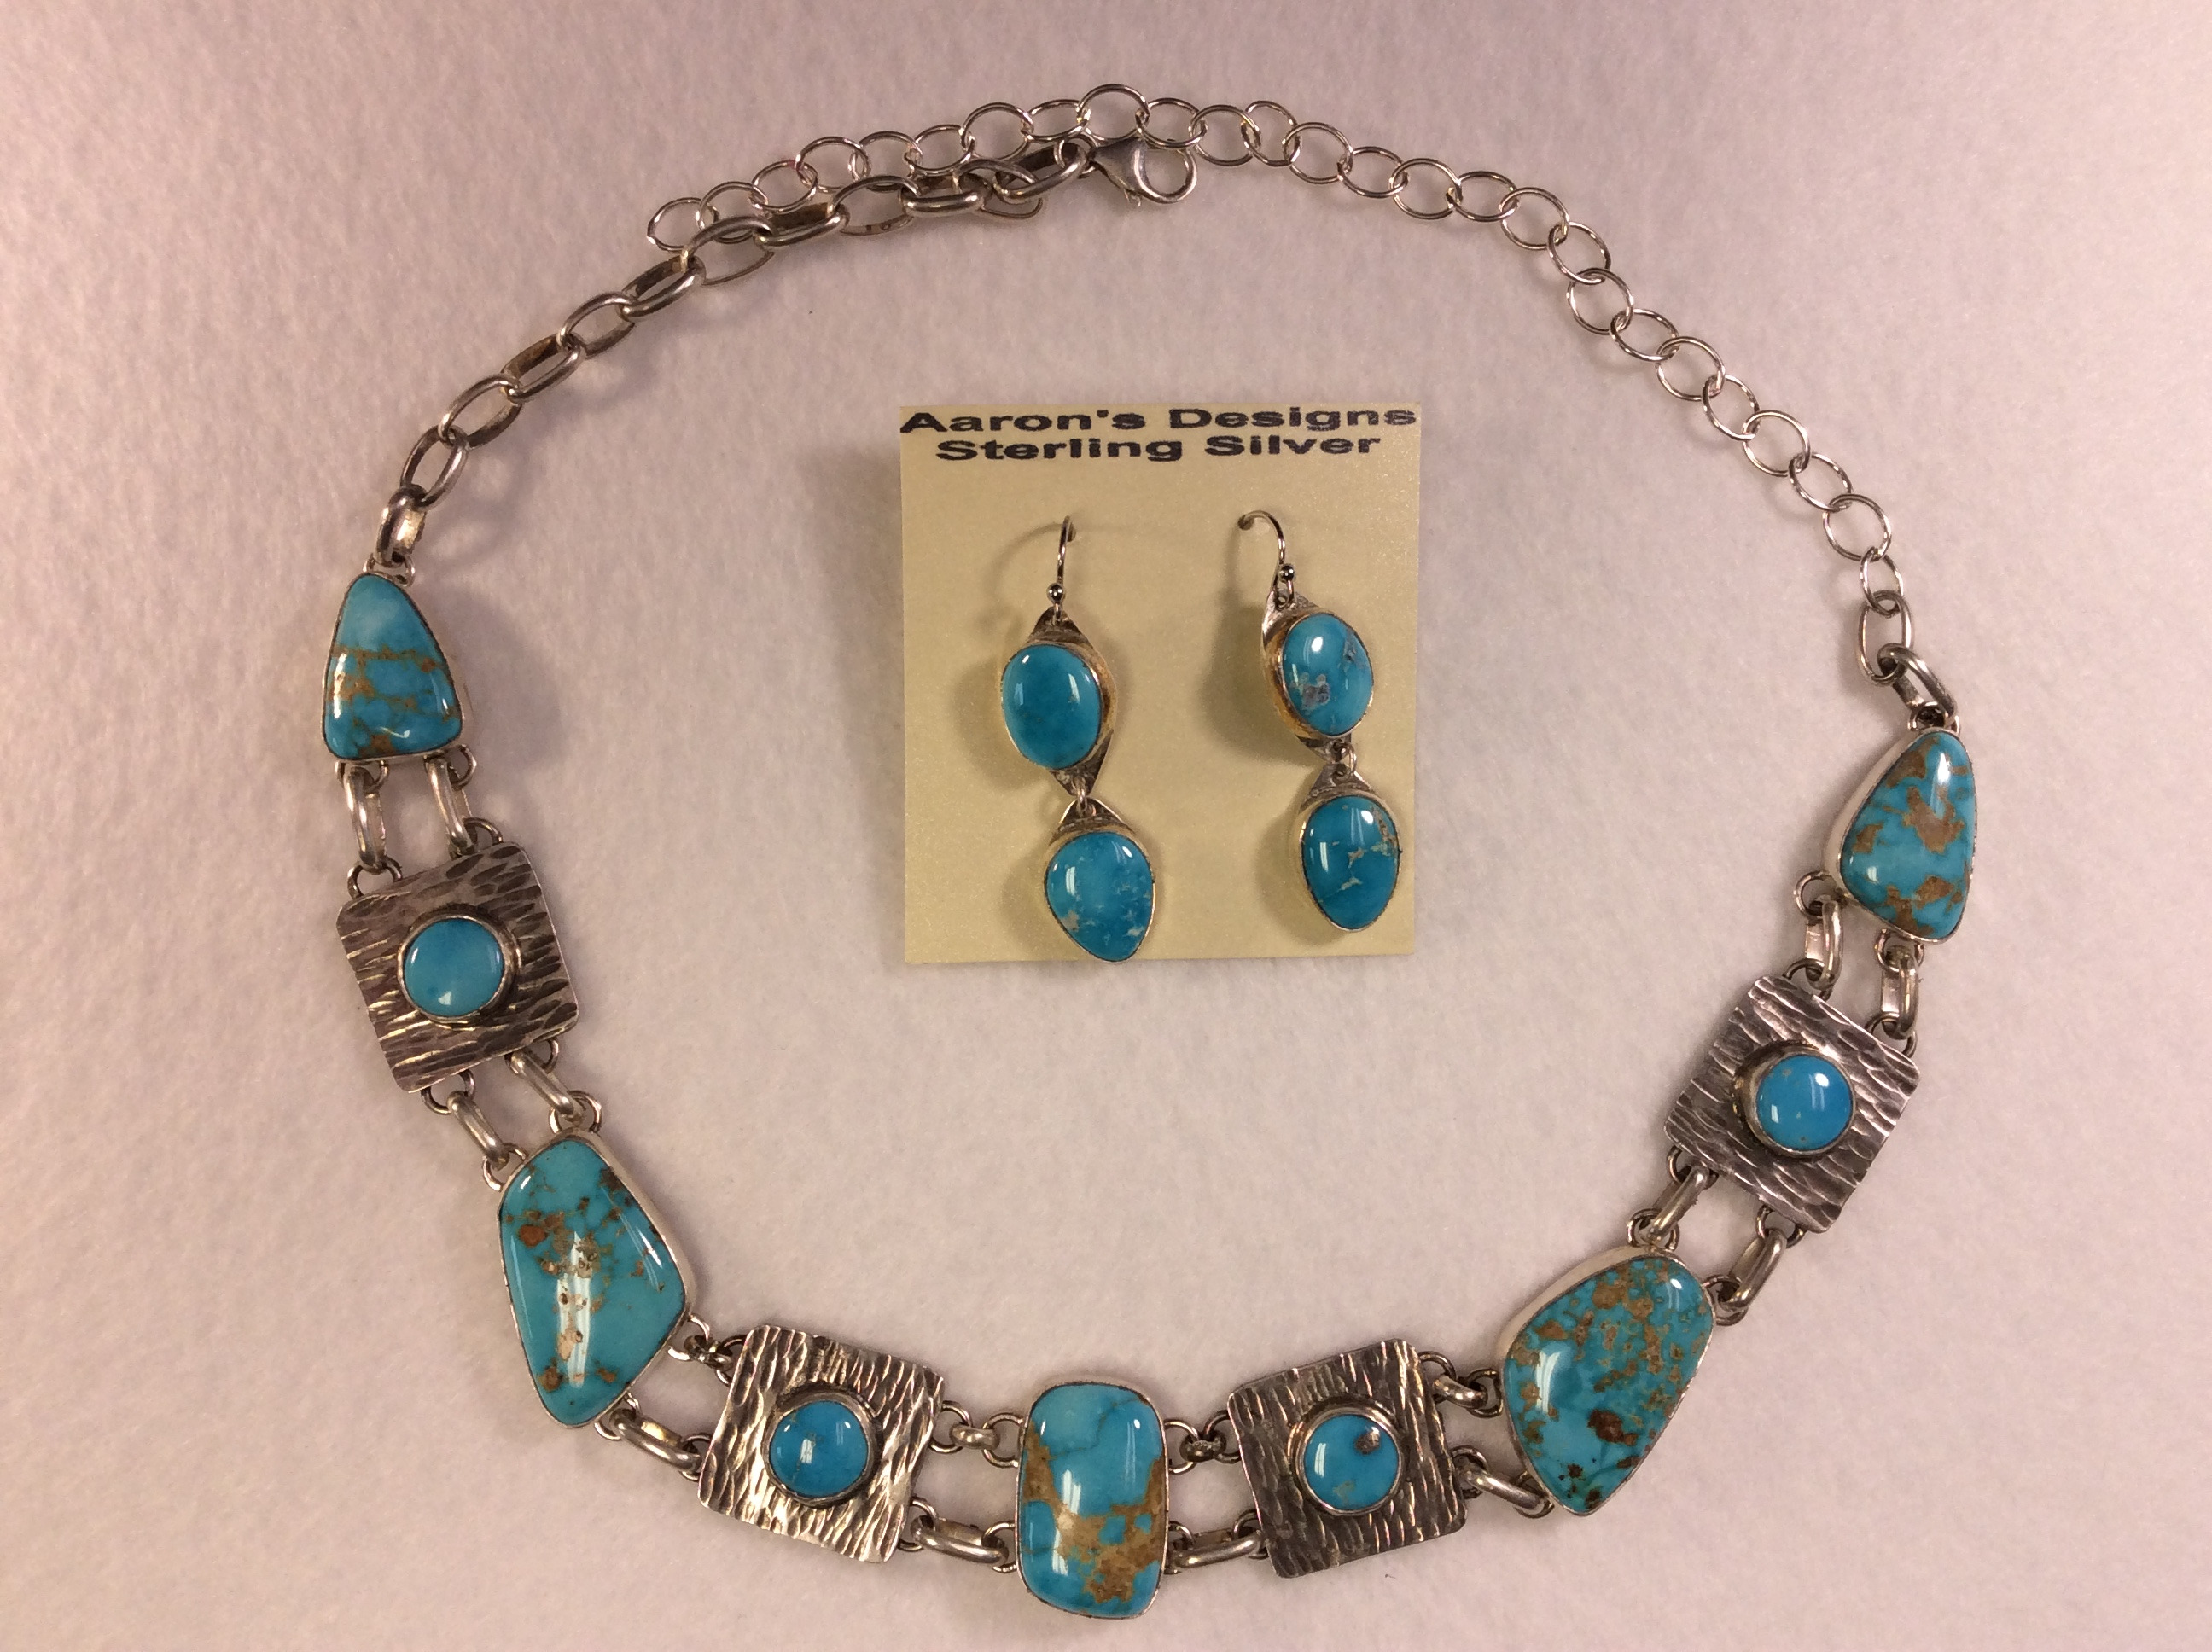 Turquoise necklace and earing set